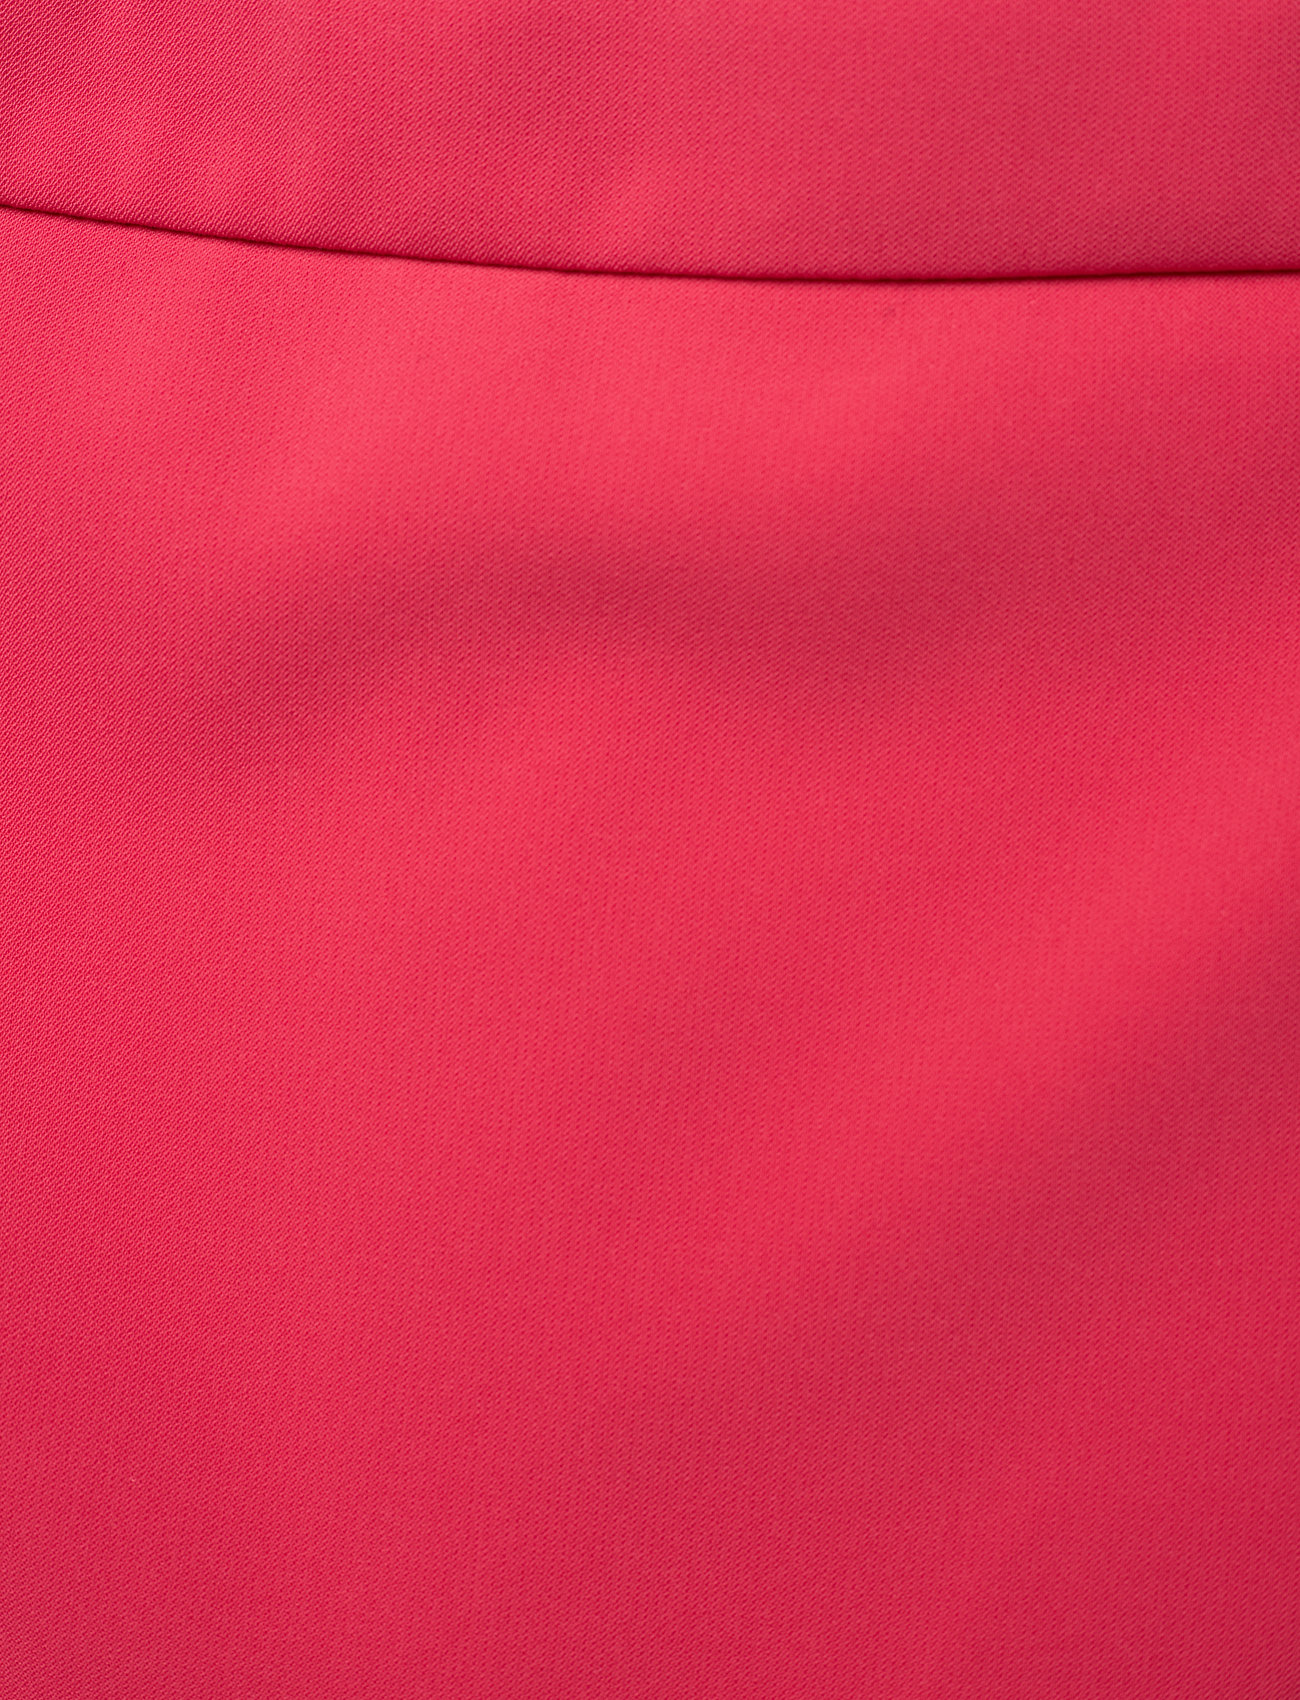 Boutique Moschino - Boutique Moschino TROUSERS - casual shorts - pink - 2